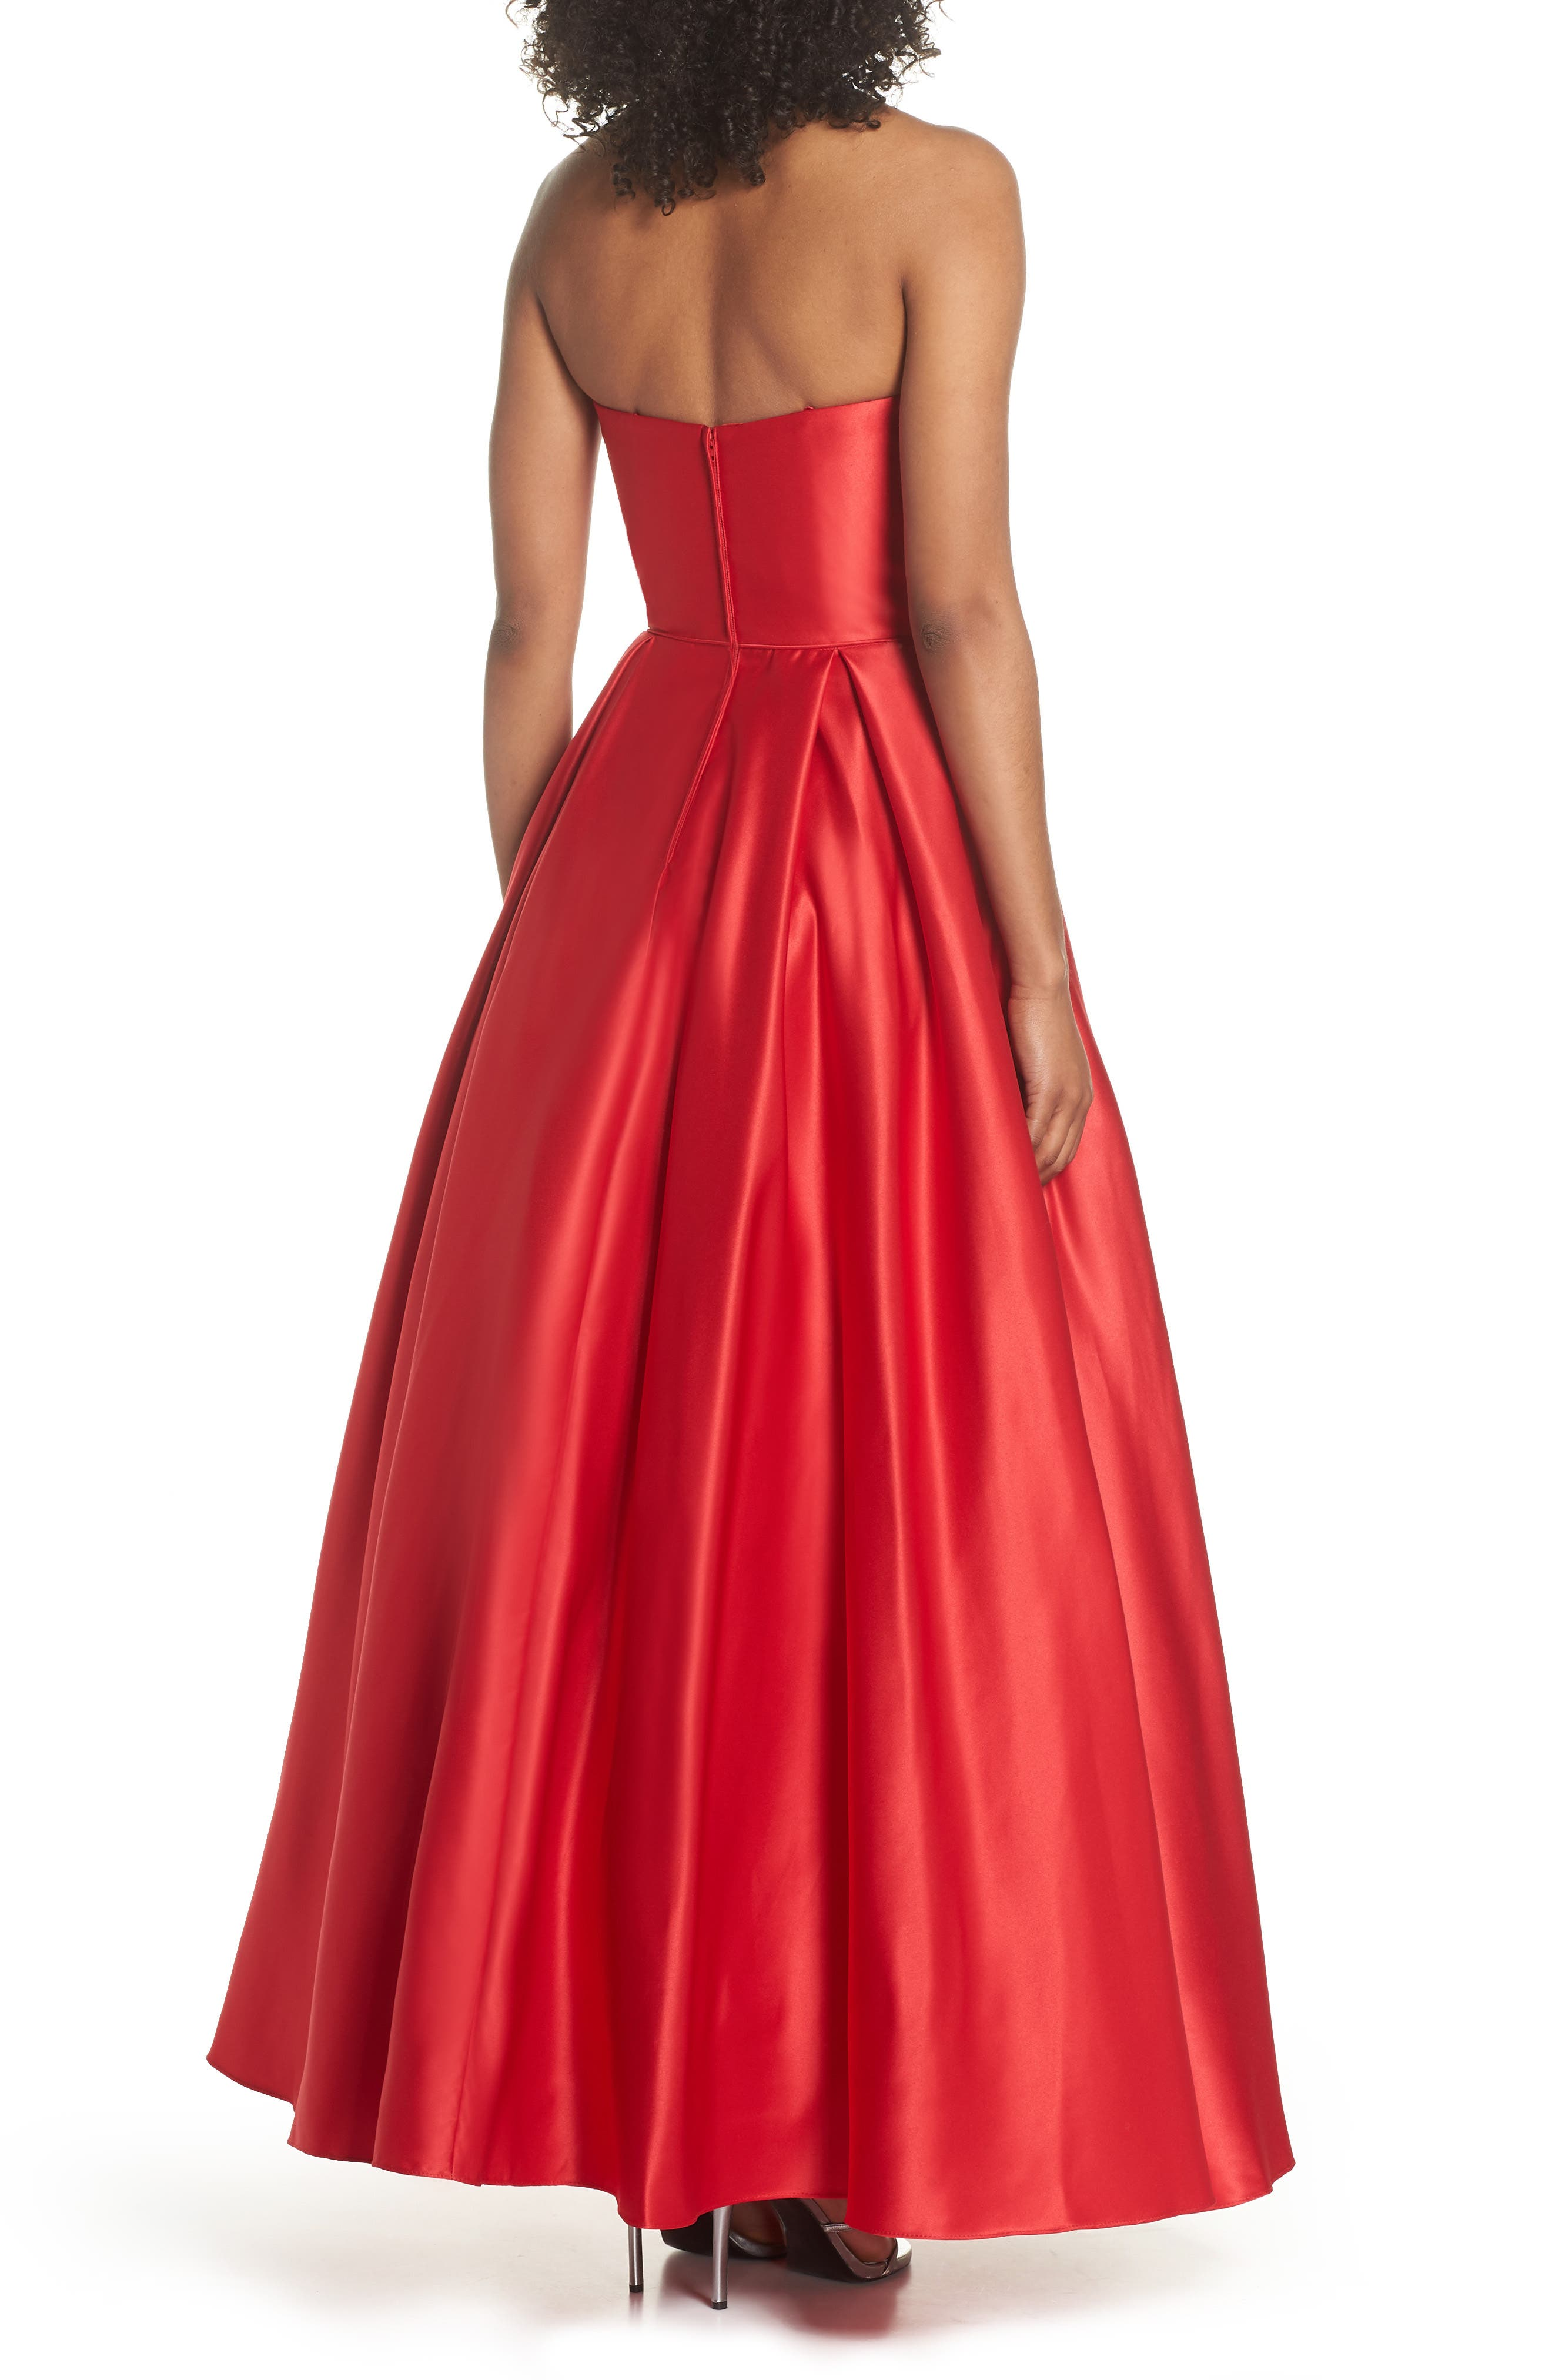 Embellished Strapless Ballgown,                             Alternate thumbnail 2, color,                             Red